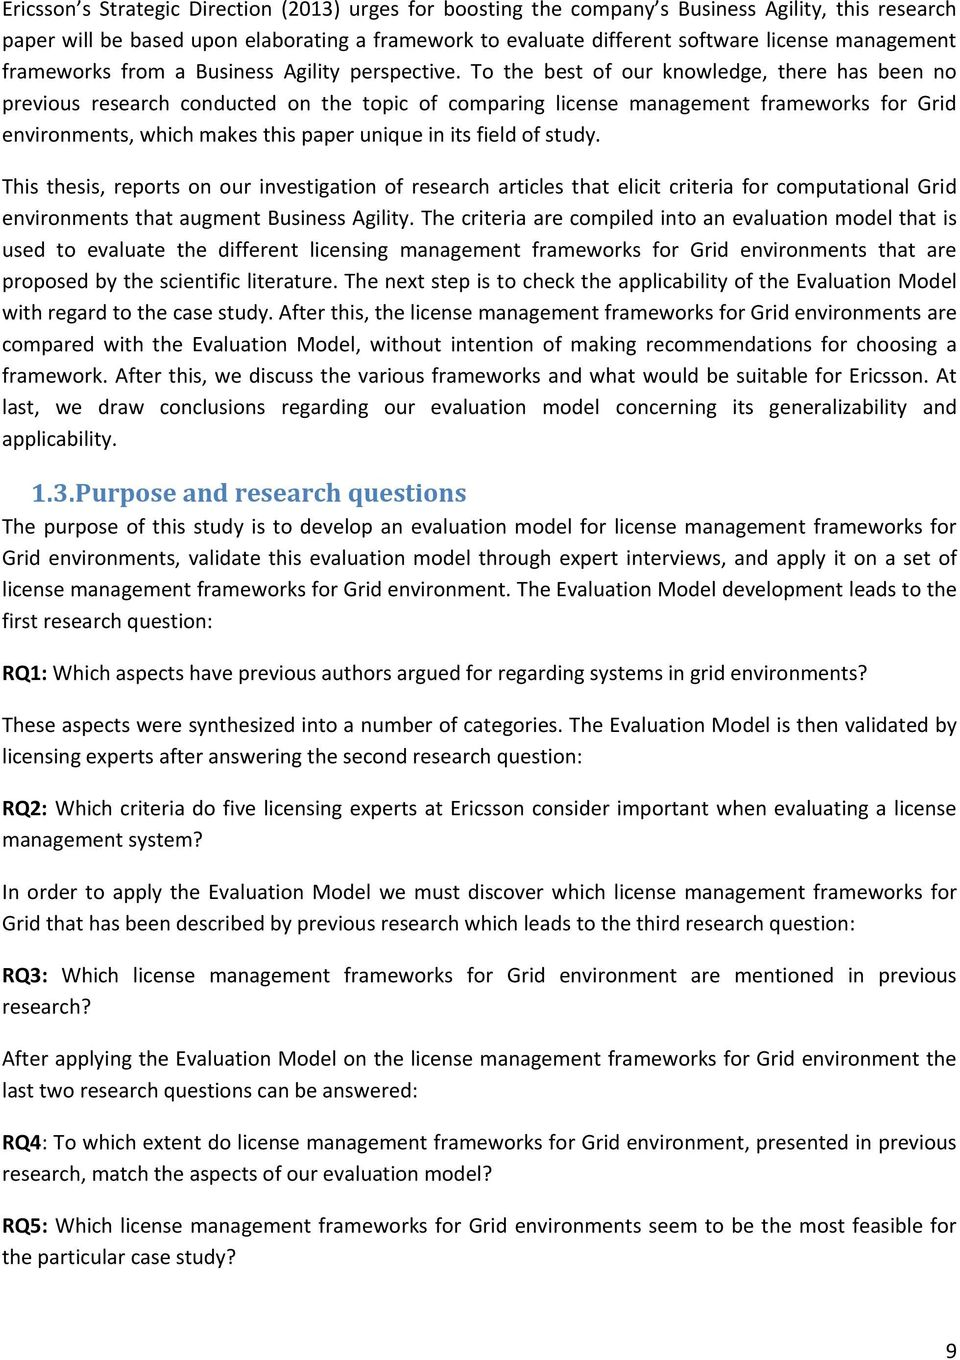 To the best of our knowledge, there has been no previous research conducted on the topic of comparing license management frameworks for Grid environments, which makes this paper unique in its field